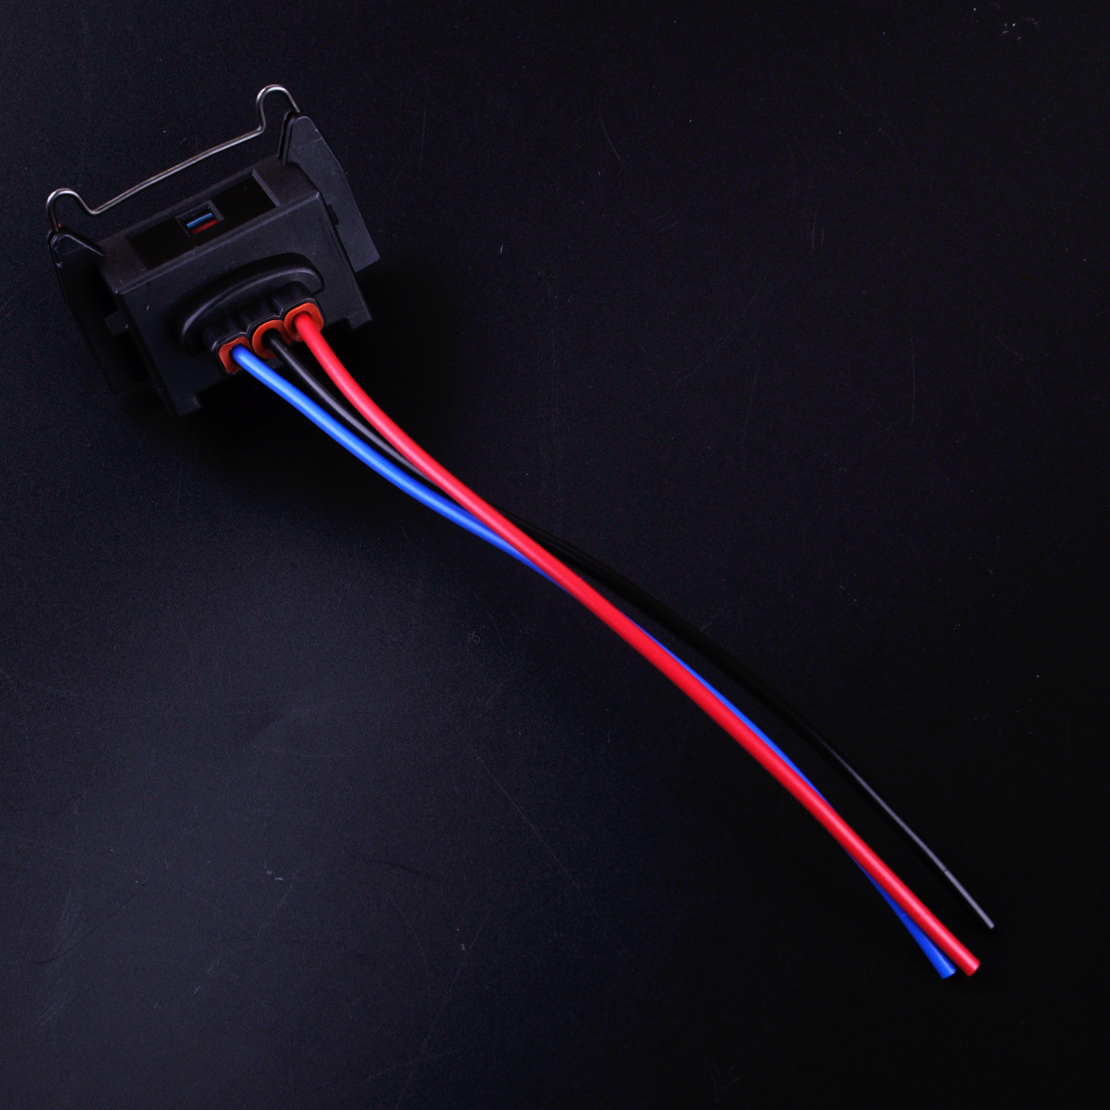 details about fit ford mazda 645 302 ignition coil pack wiring harness connector 13 5cm cable Ford 302 Ignition Coil Wiring